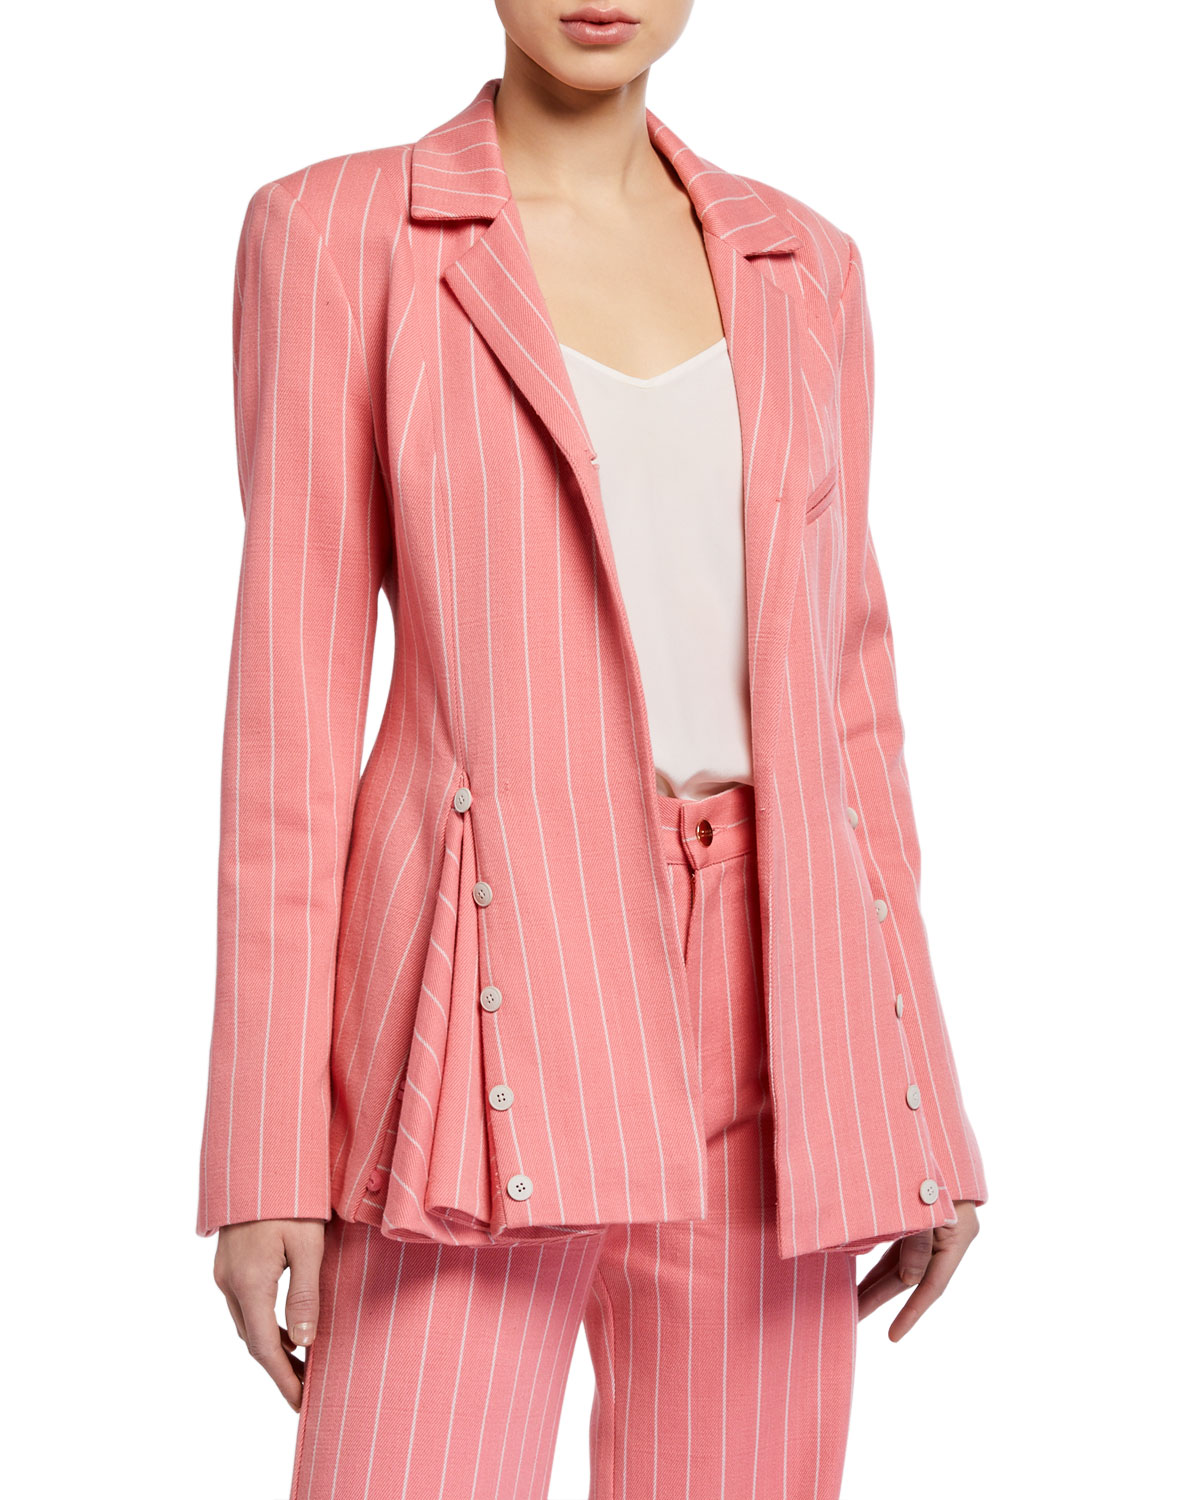 Maggie Marilyn Follow Your Heart Striped Blazer